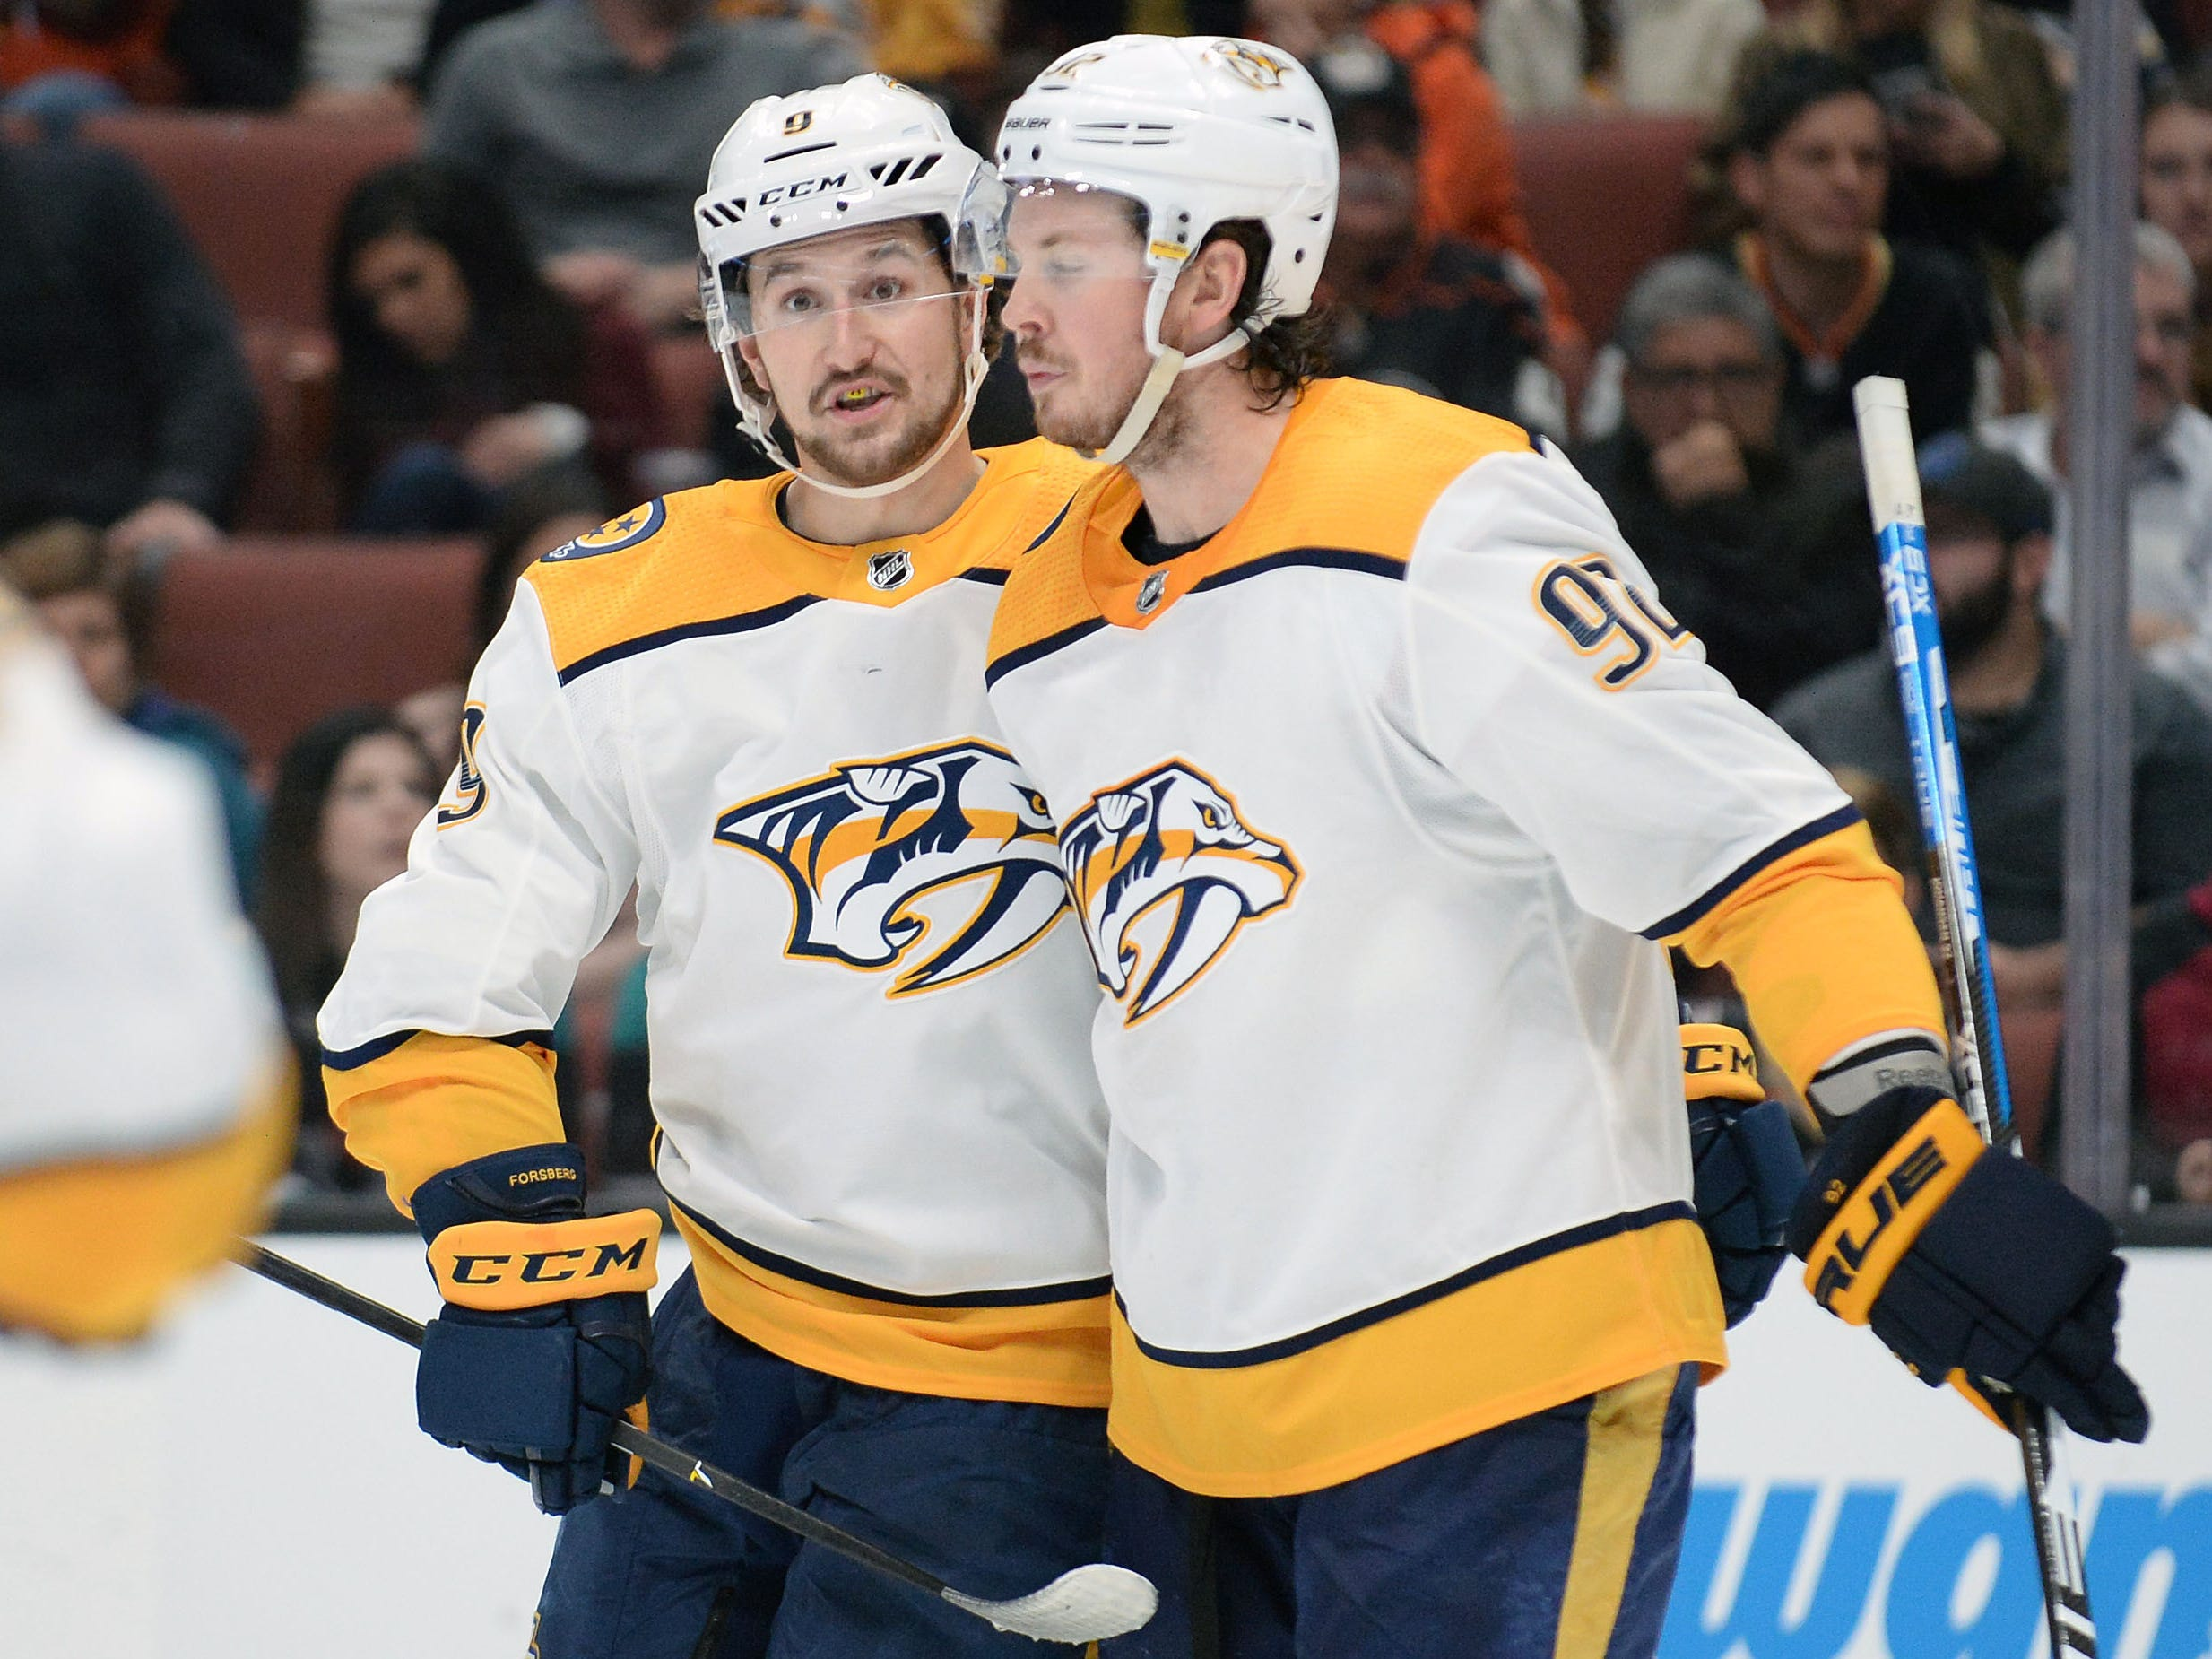 March 12, 2019: Ducks 3, Predators 2 -- Nashville Predators left wing Filip Forsberg (9) celebrates with center Ryan Johansen (92)  his first power play goal of the game scored against the Anaheim Ducks during the third period at Honda Center.